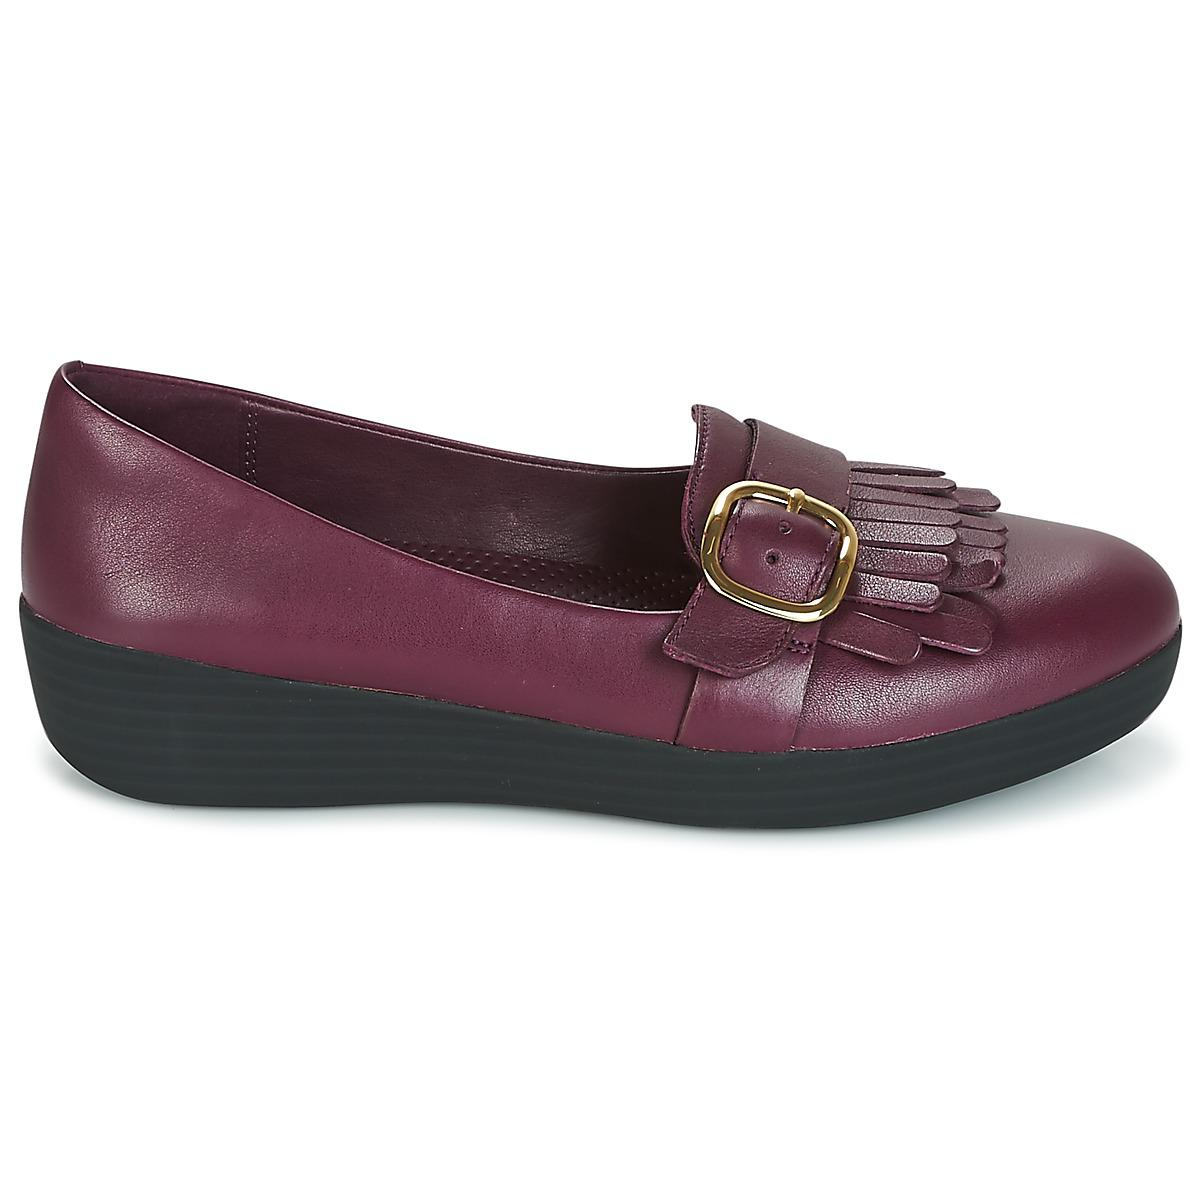 1bc0fb8002663 Fitflop - Purple Loafer moc Women s Loafers   Casual Shoes In Multicolour -  Lyst. View fullscreen